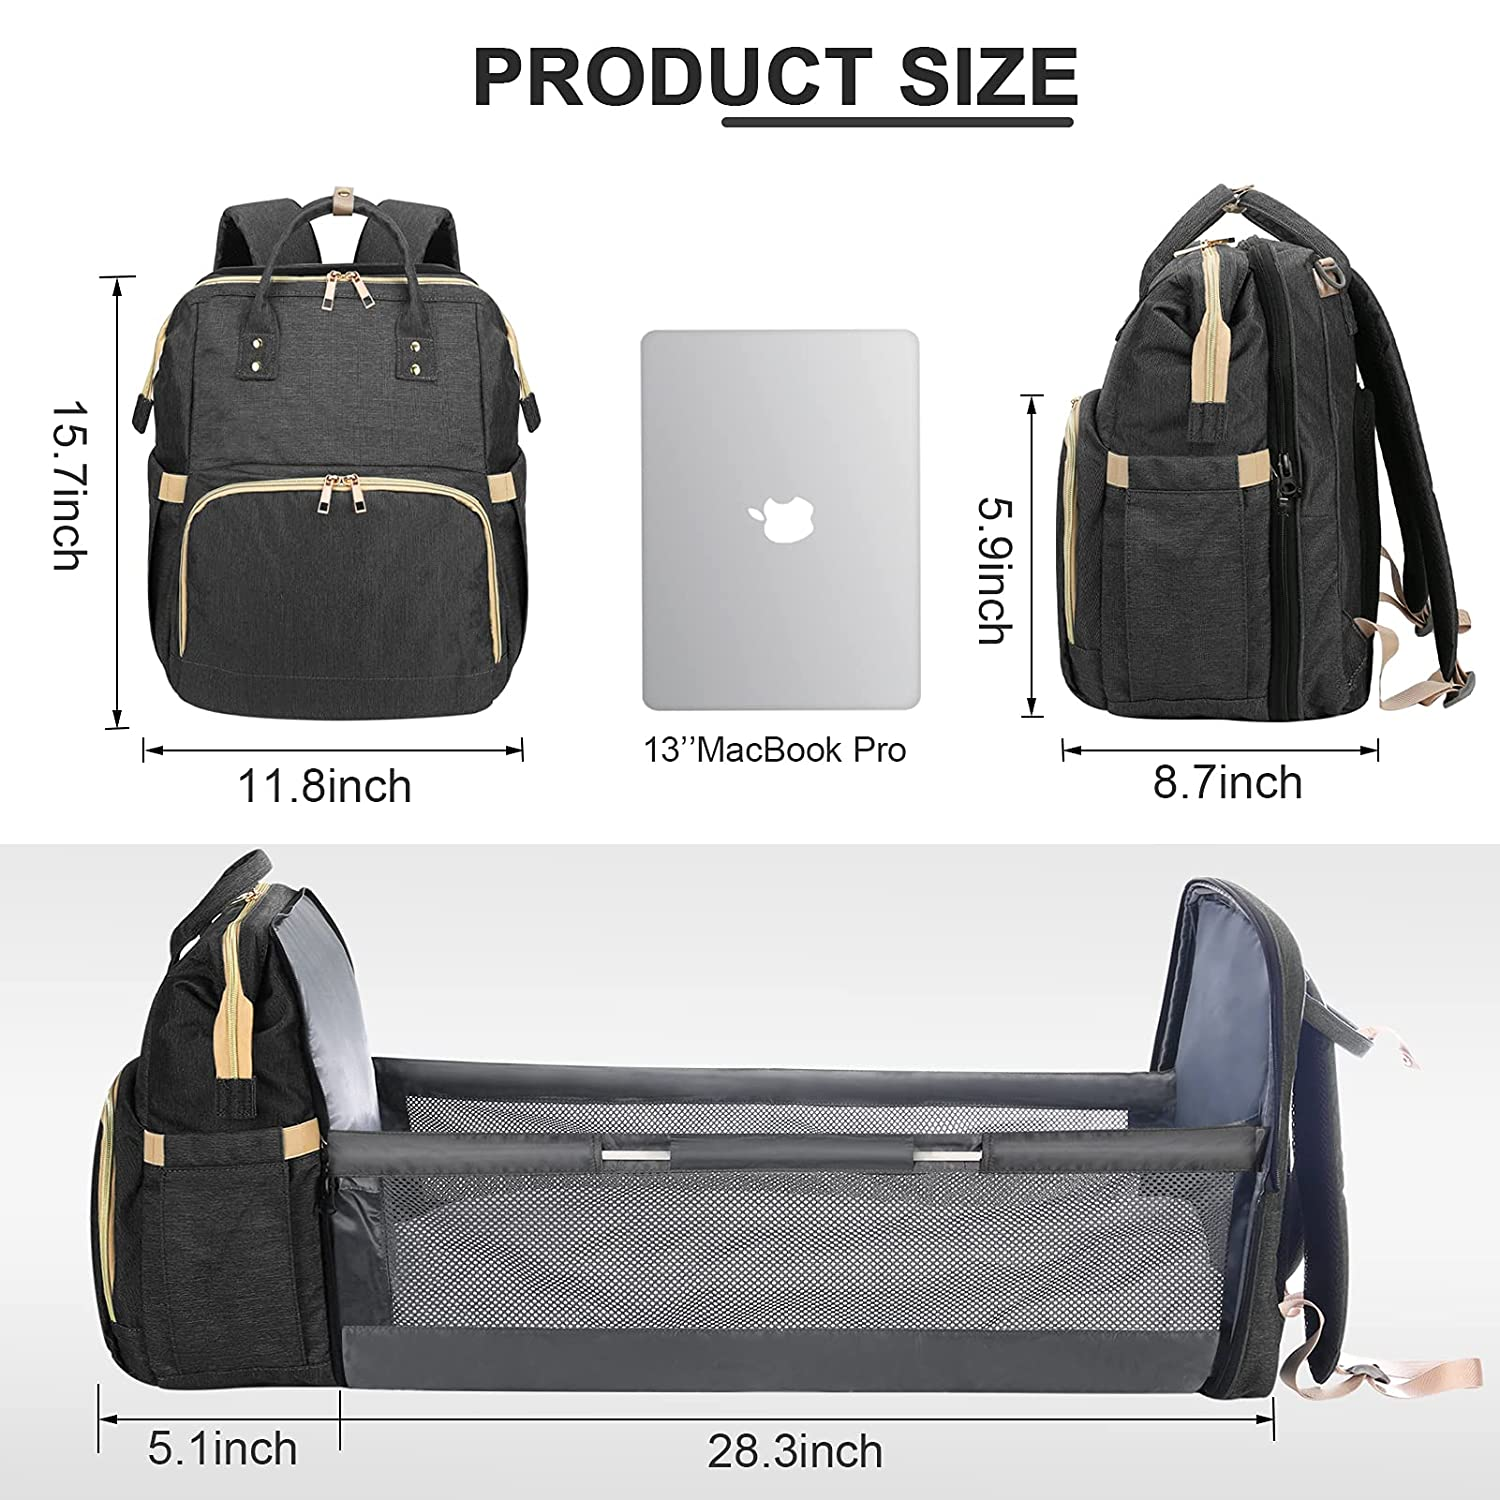 Diaper Bag Backpack Changing Station,5-in-1 Foldable Mommy Bag for Dad Mom,Baby Bags with Travel Bassinet Bed for Boys Girl, Large Capacity with Crib,Mattress(Black)